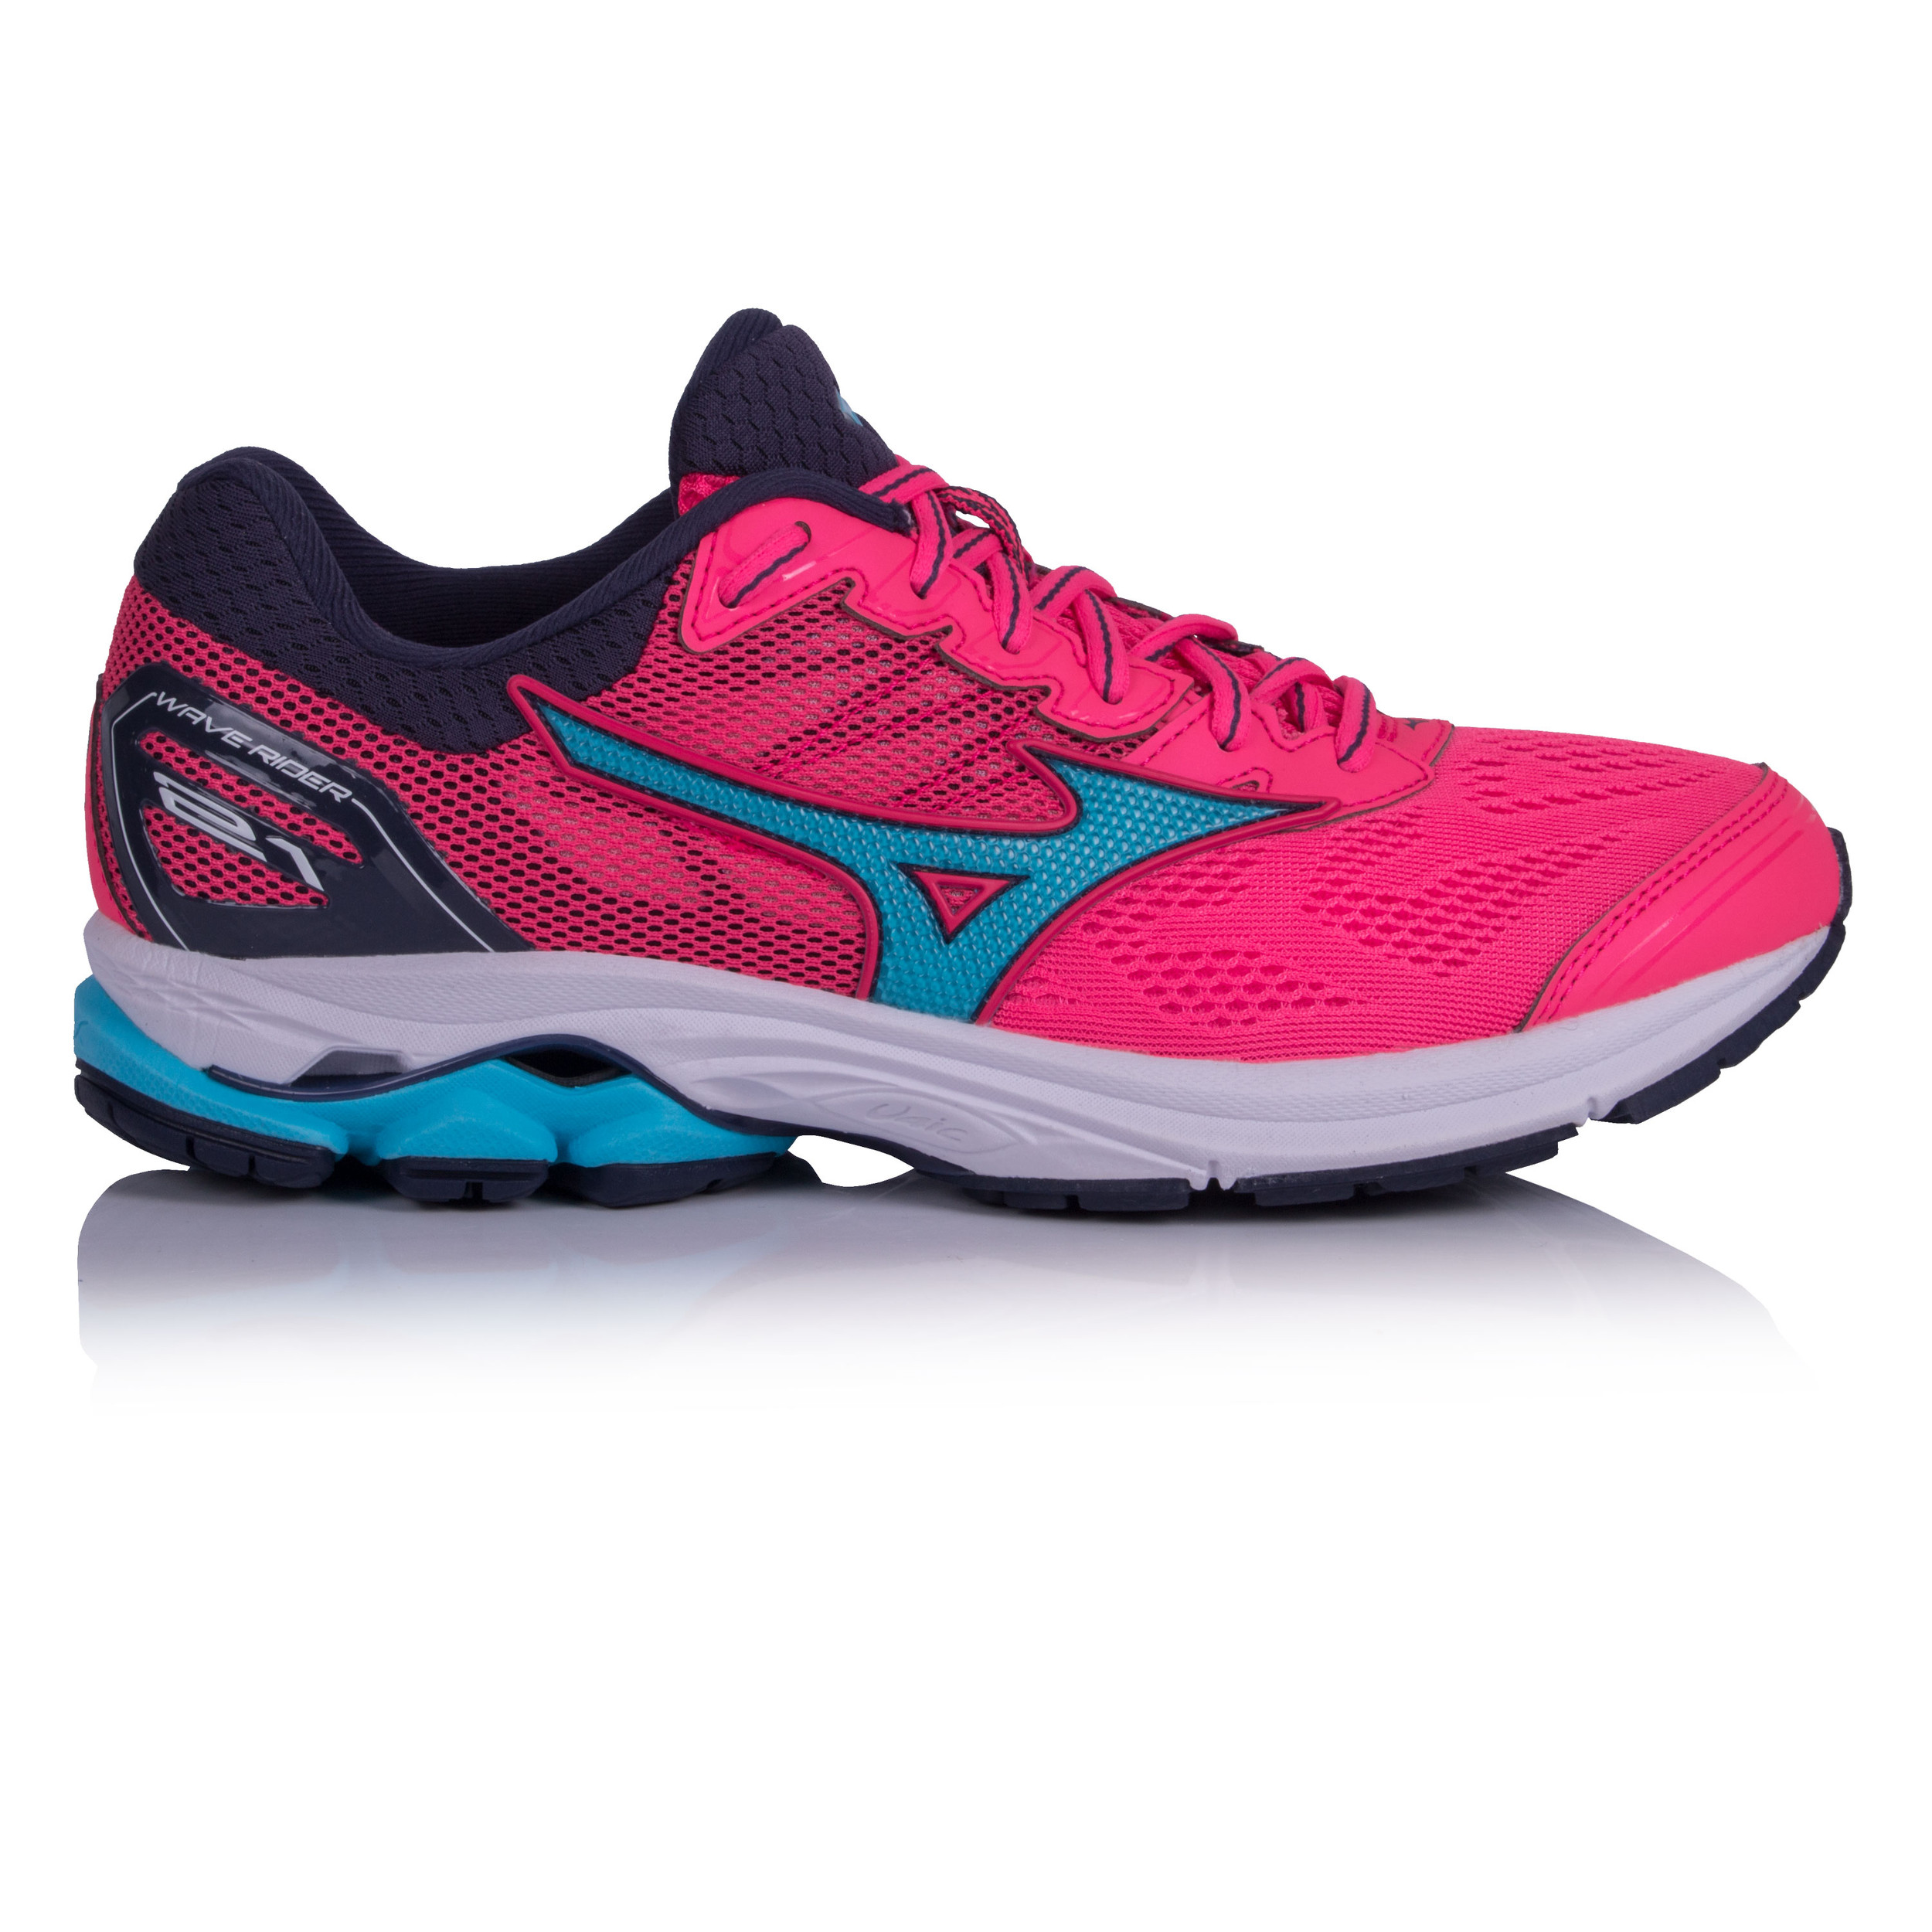 separation shoes 7087d 46d40 Details about Mizuno Womens Wave Rider 21 Running Shoes Trainers Sneakers  Pink Sports